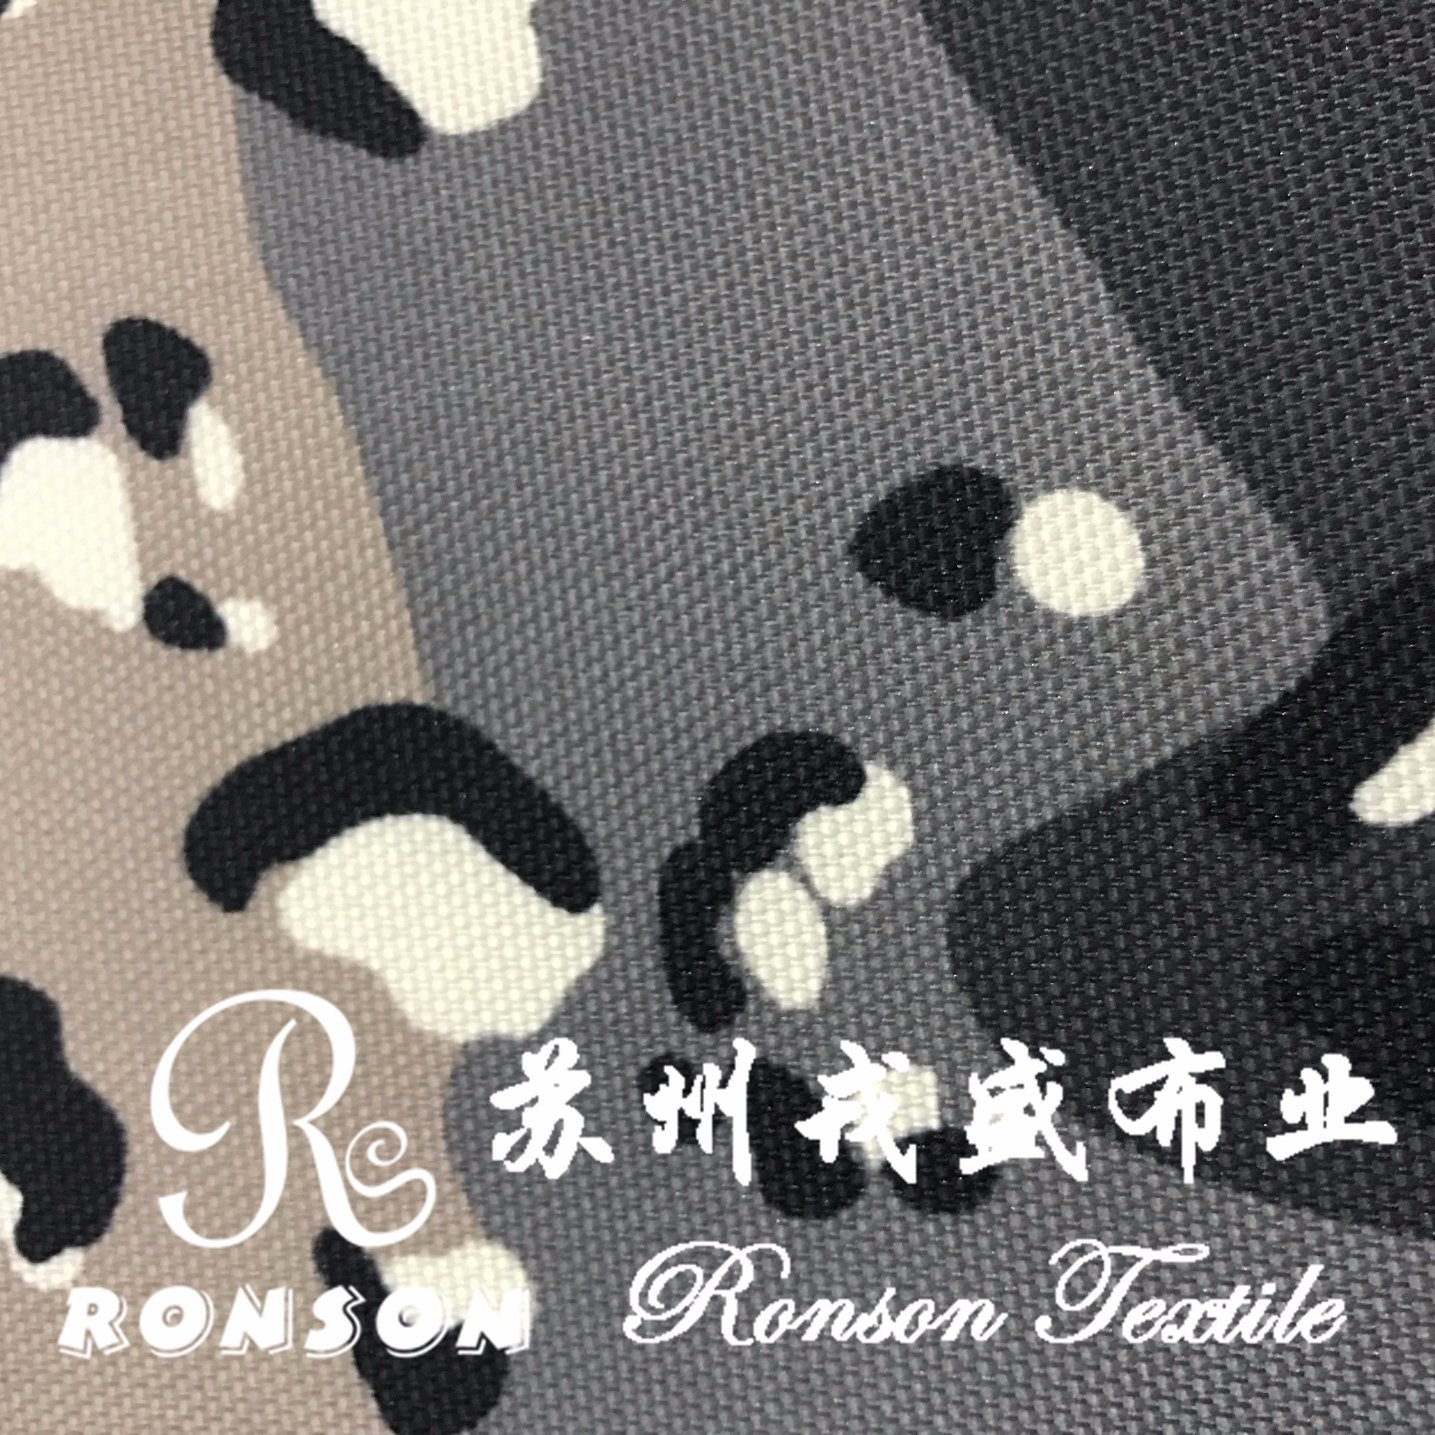 900d Polyester Oxford Fabric with PU Coated for Military Shoots, Bags